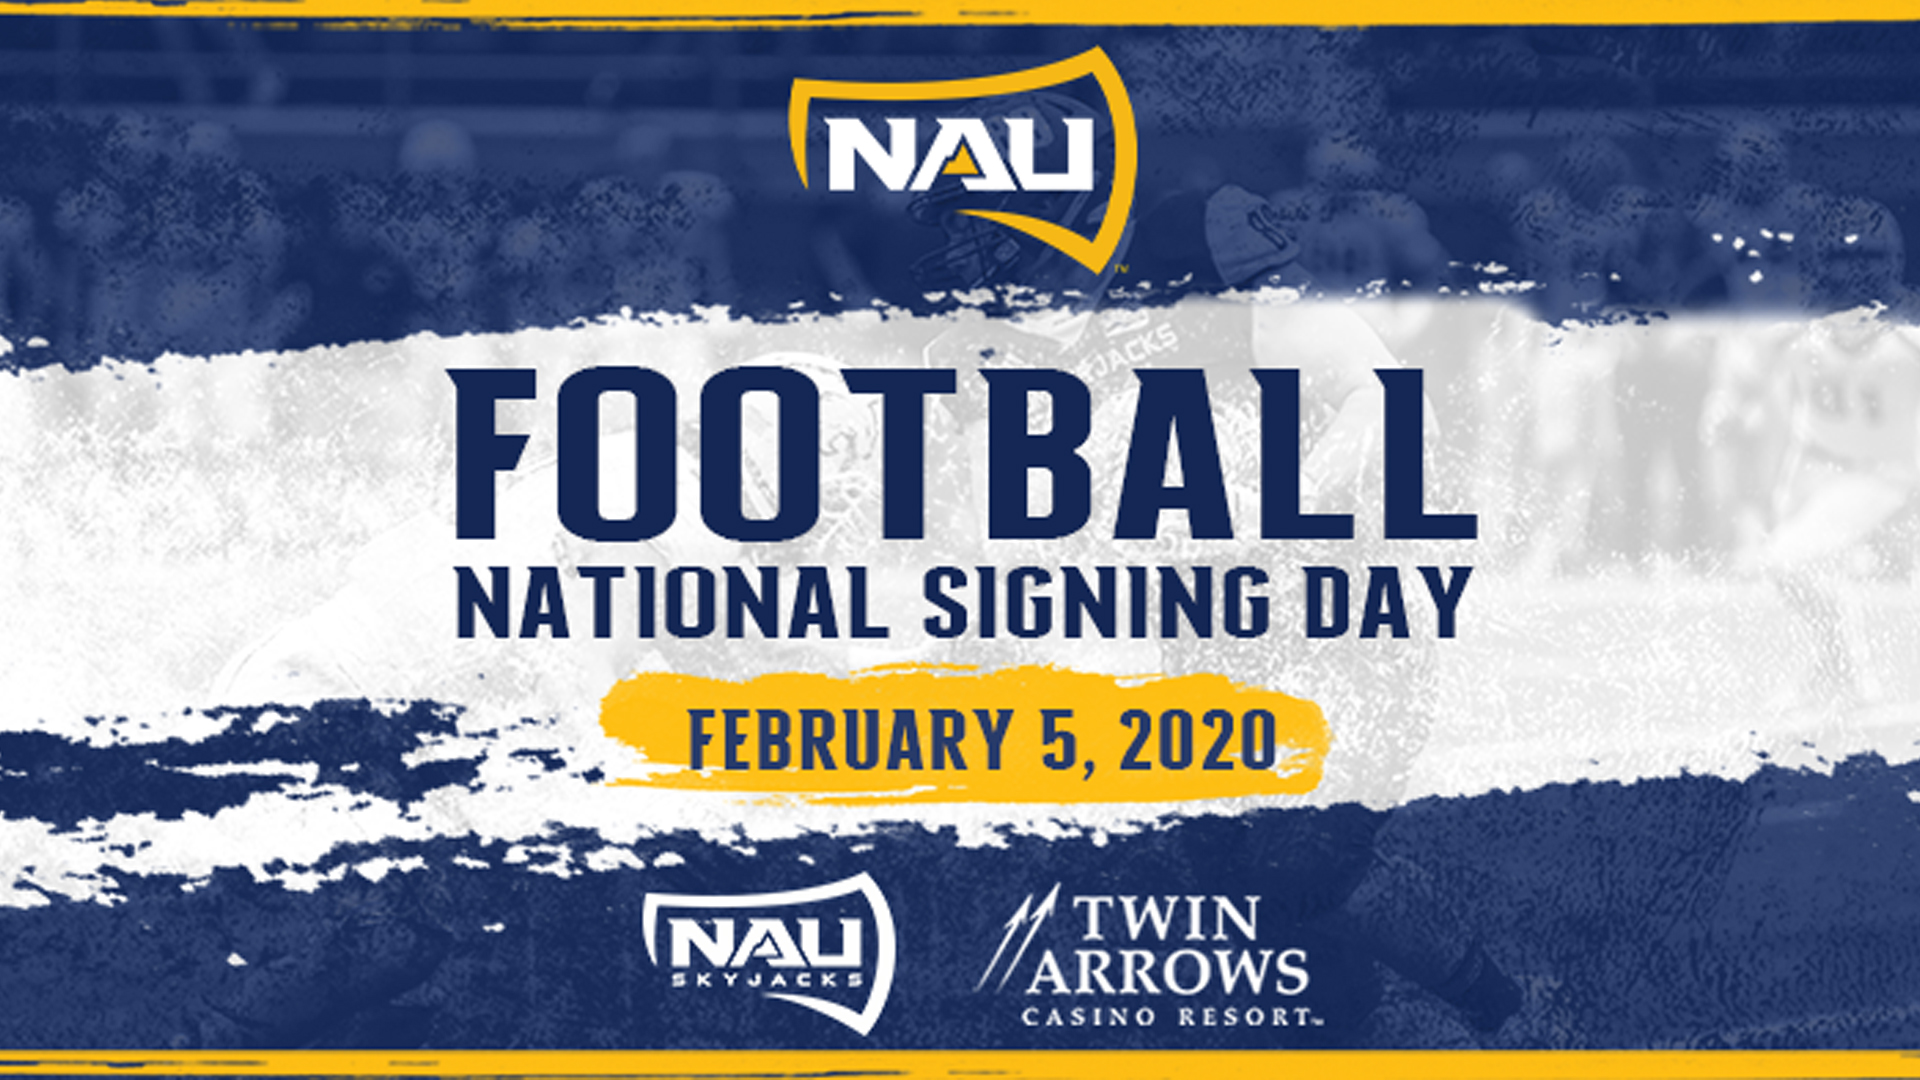 NAU Football to Host National Signing Day Event on February 5 1920x1080